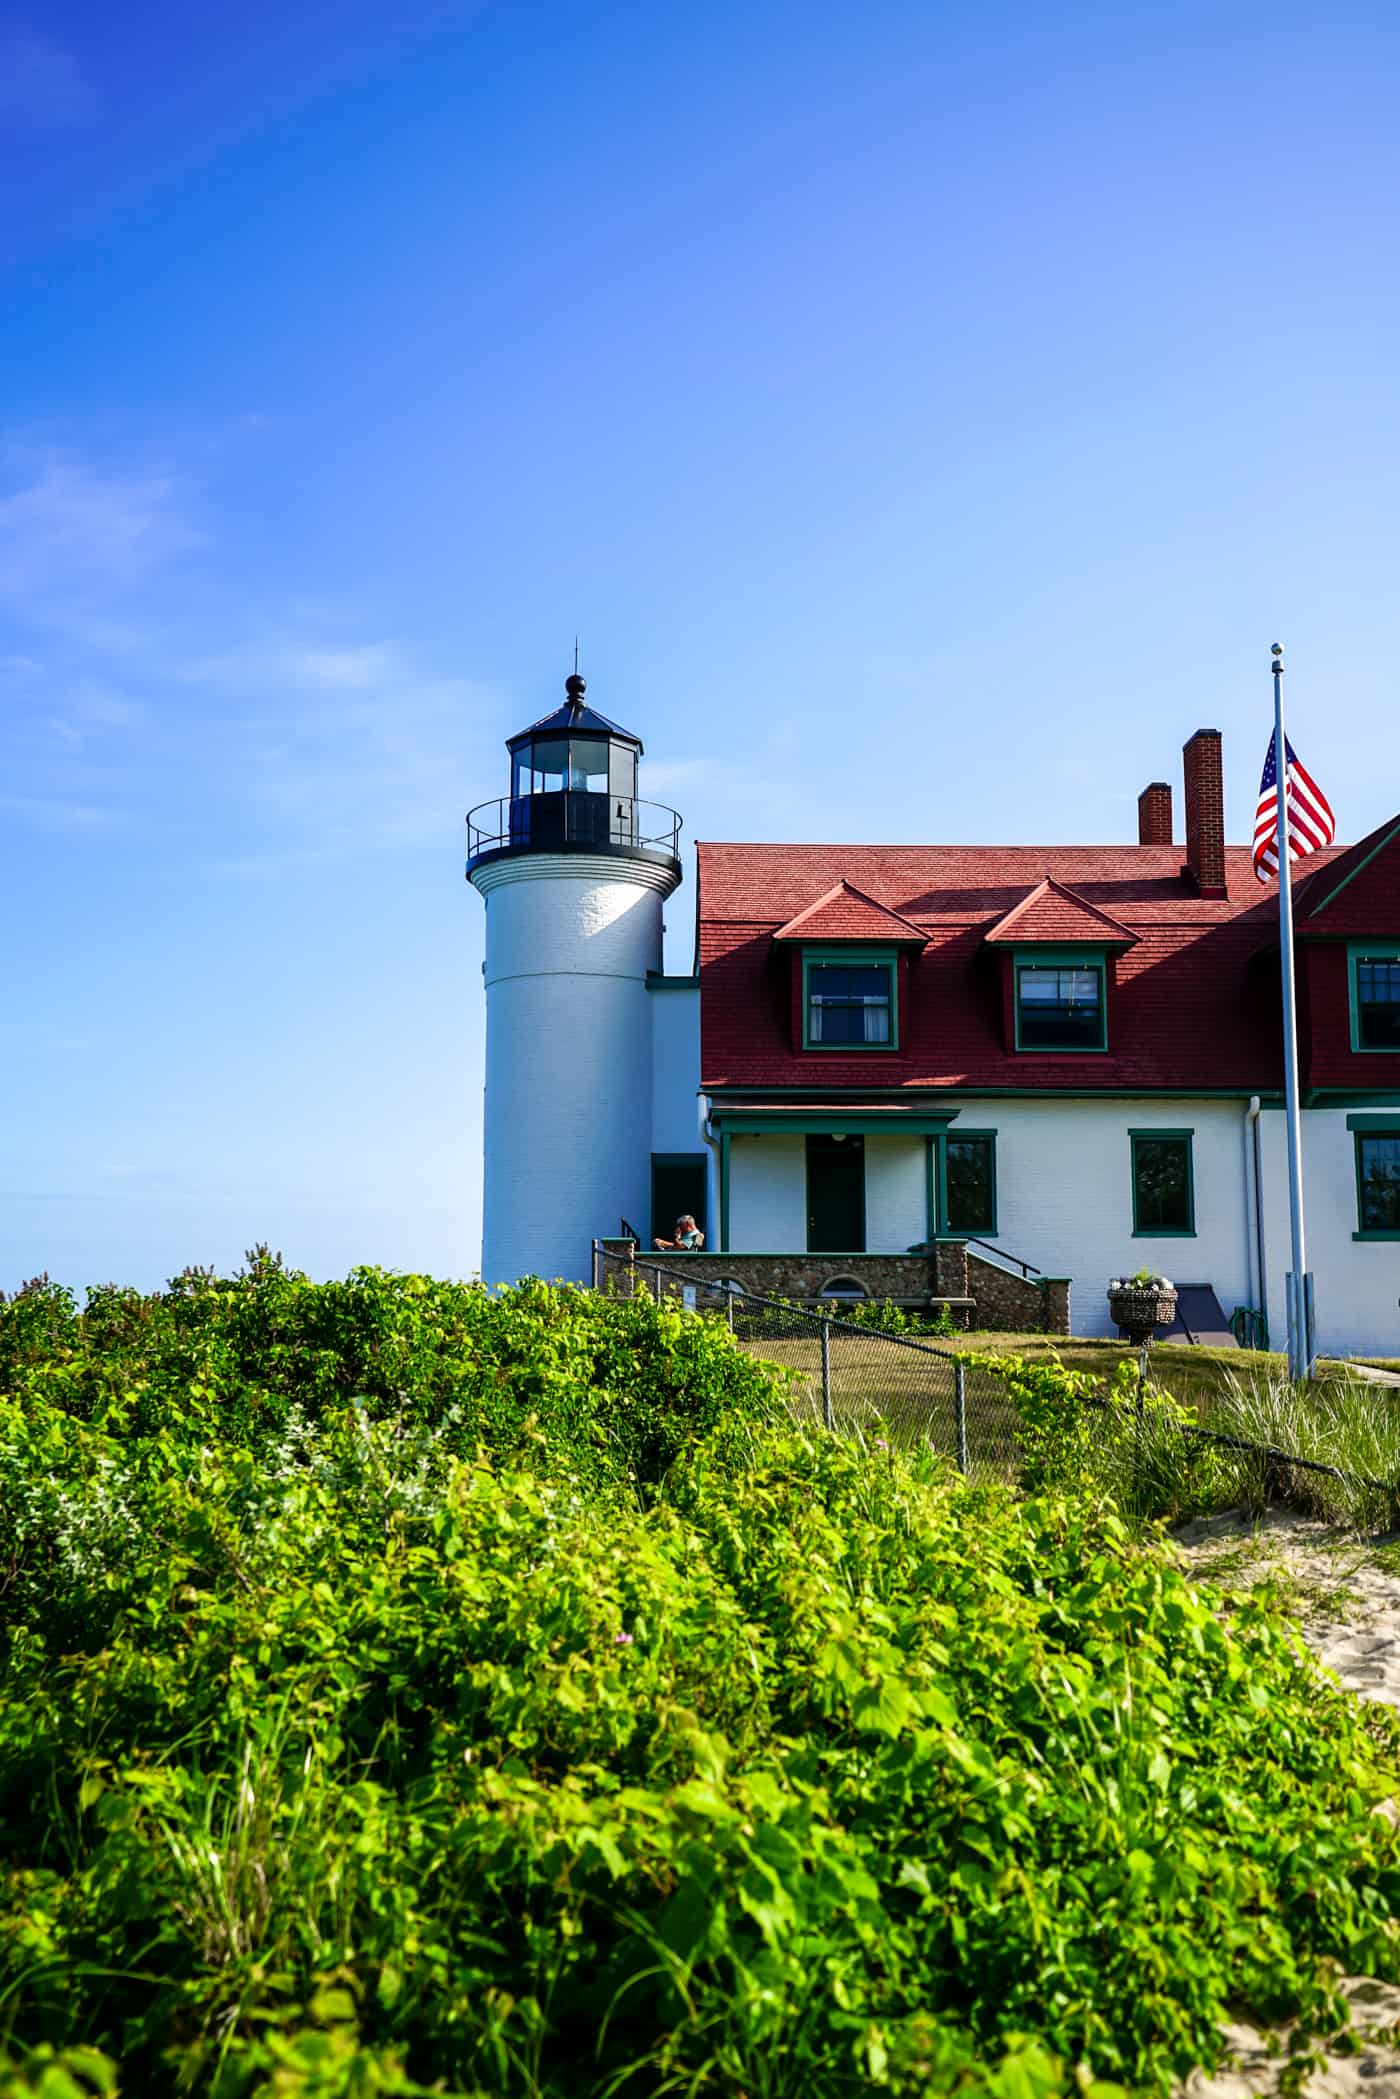 A Lily Love Affair shares her thoughts on what to do in Frankfort, Michigan. Michigan travel guide